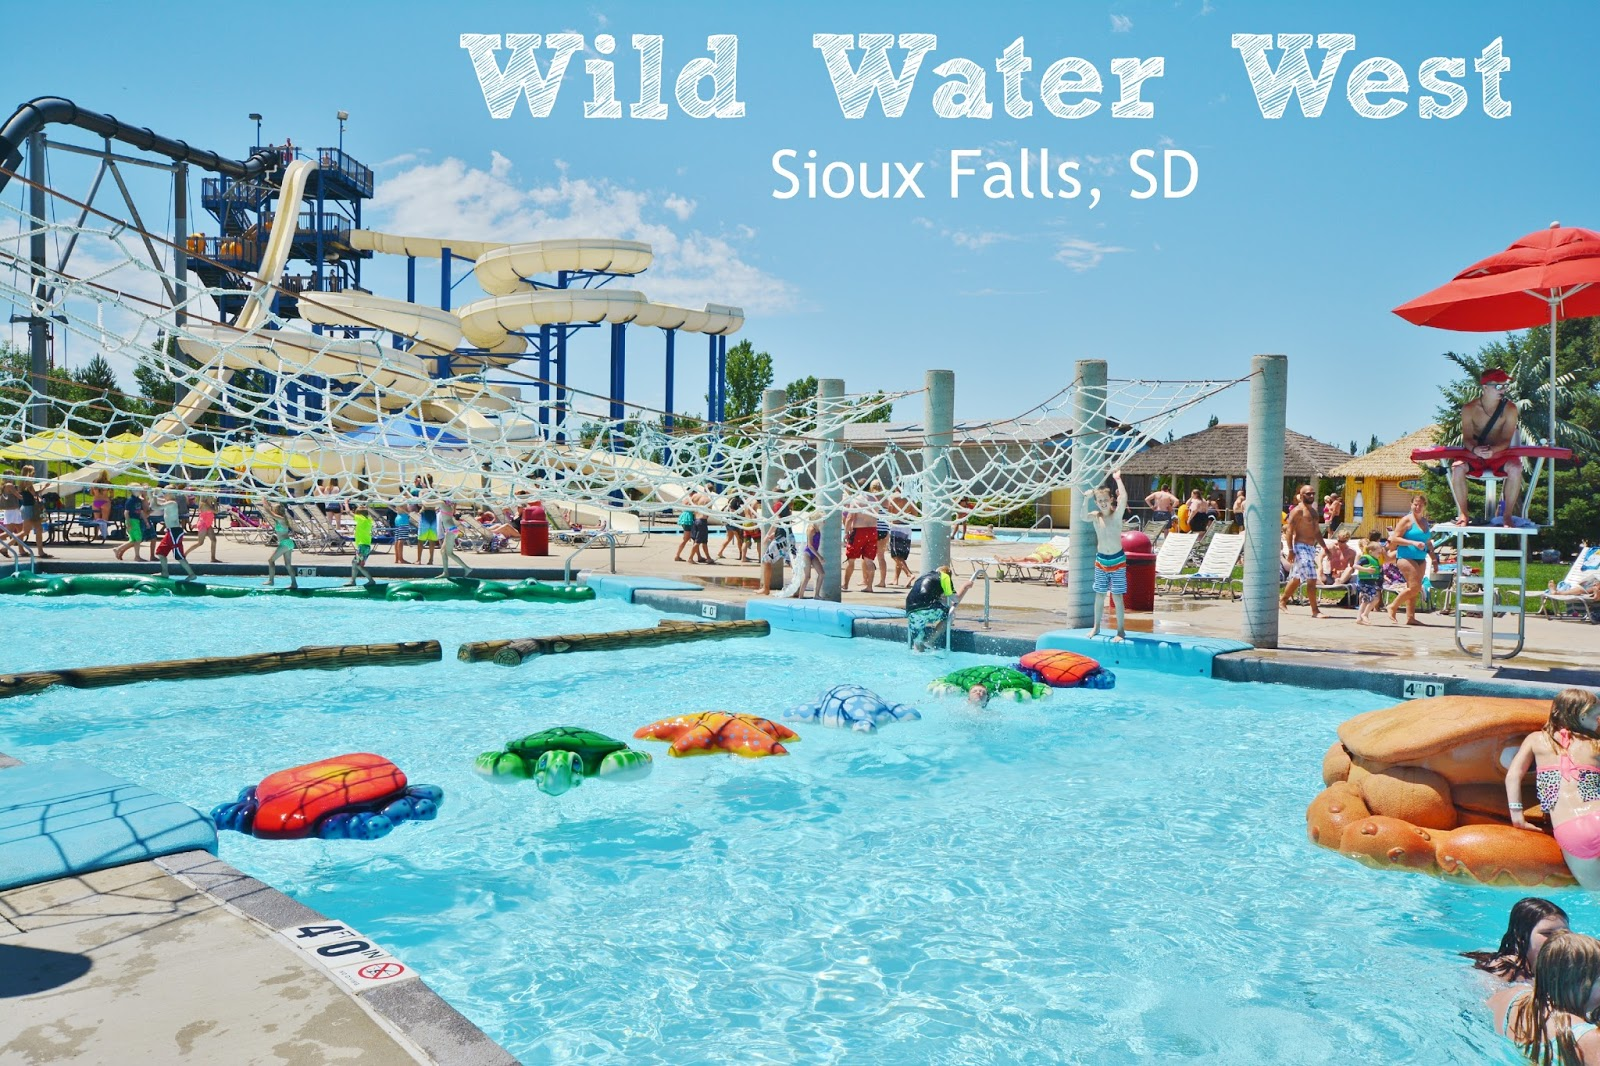 South Dakota's largest waterpark, Wild Water West is a must do #attraction in Sioux Falls! #70dayroadtrip #travel